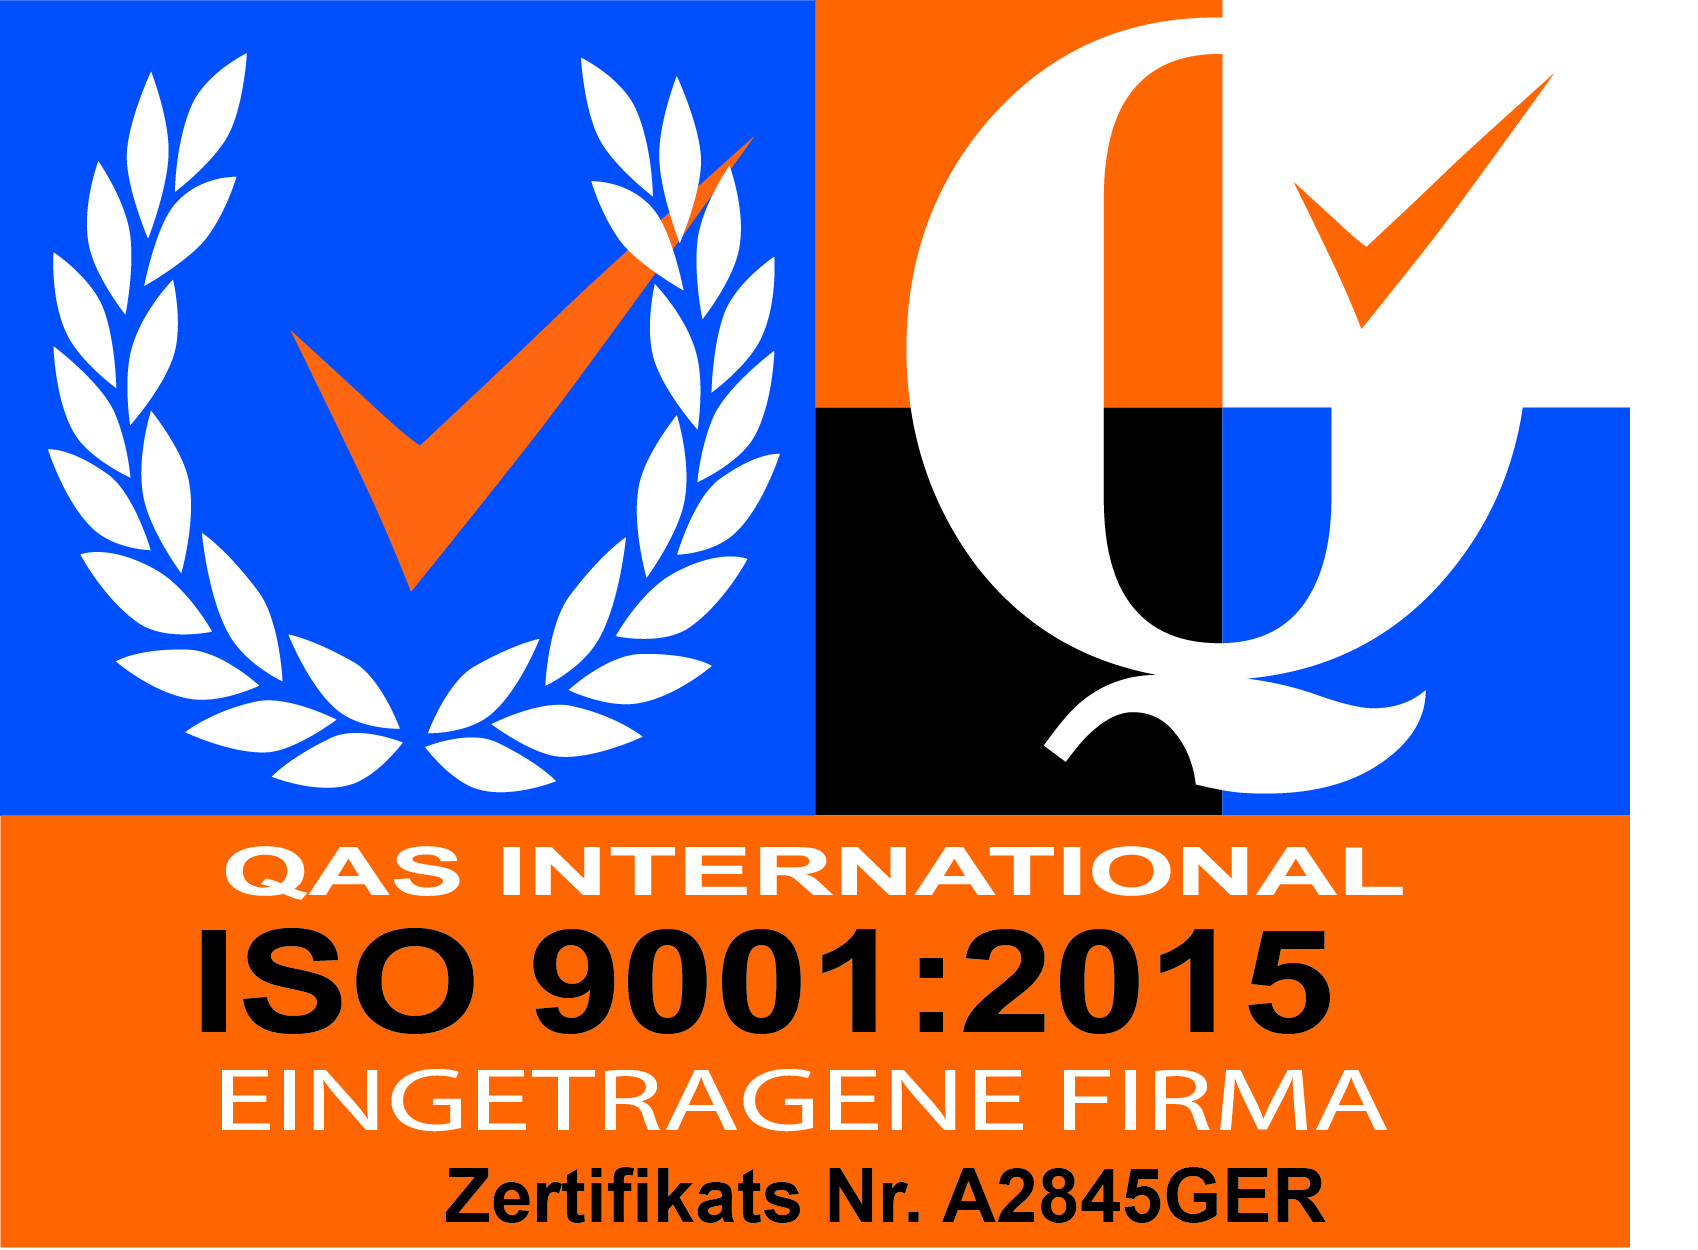 ISO 9001:2015 Nr. A2845GER